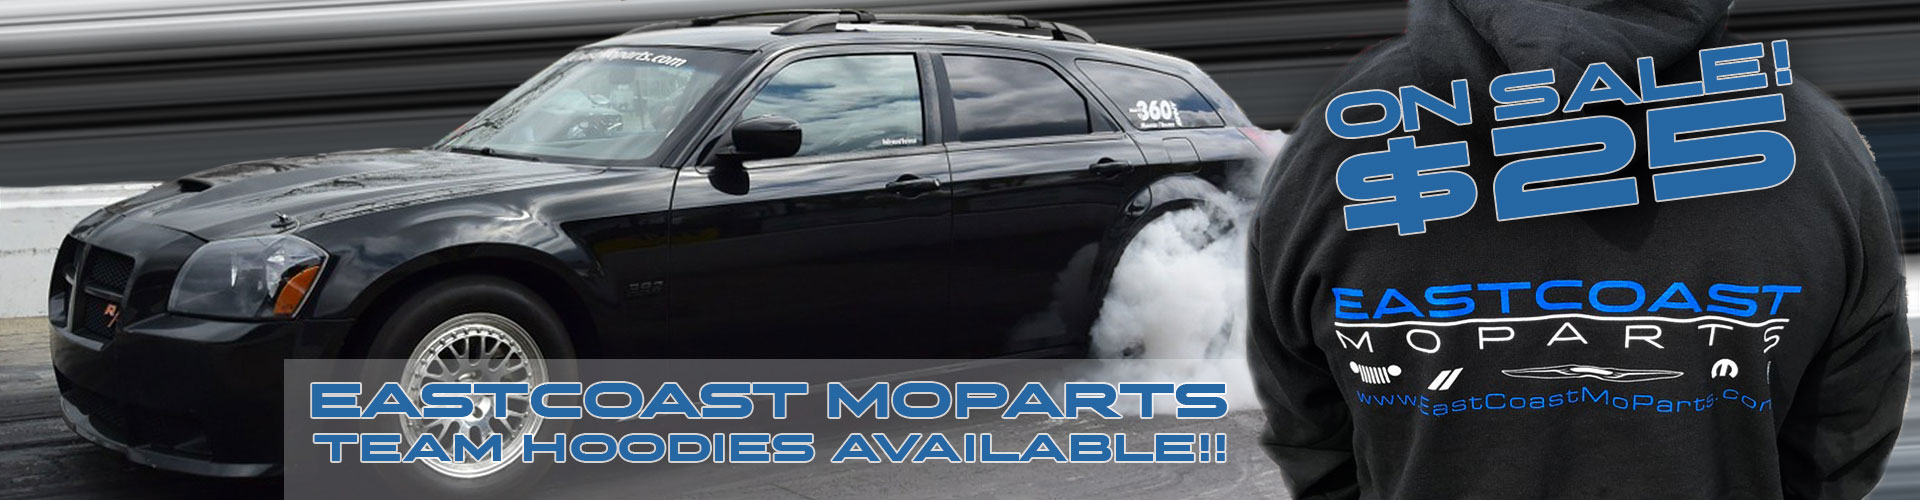 EastCoastMoparts Banner 4